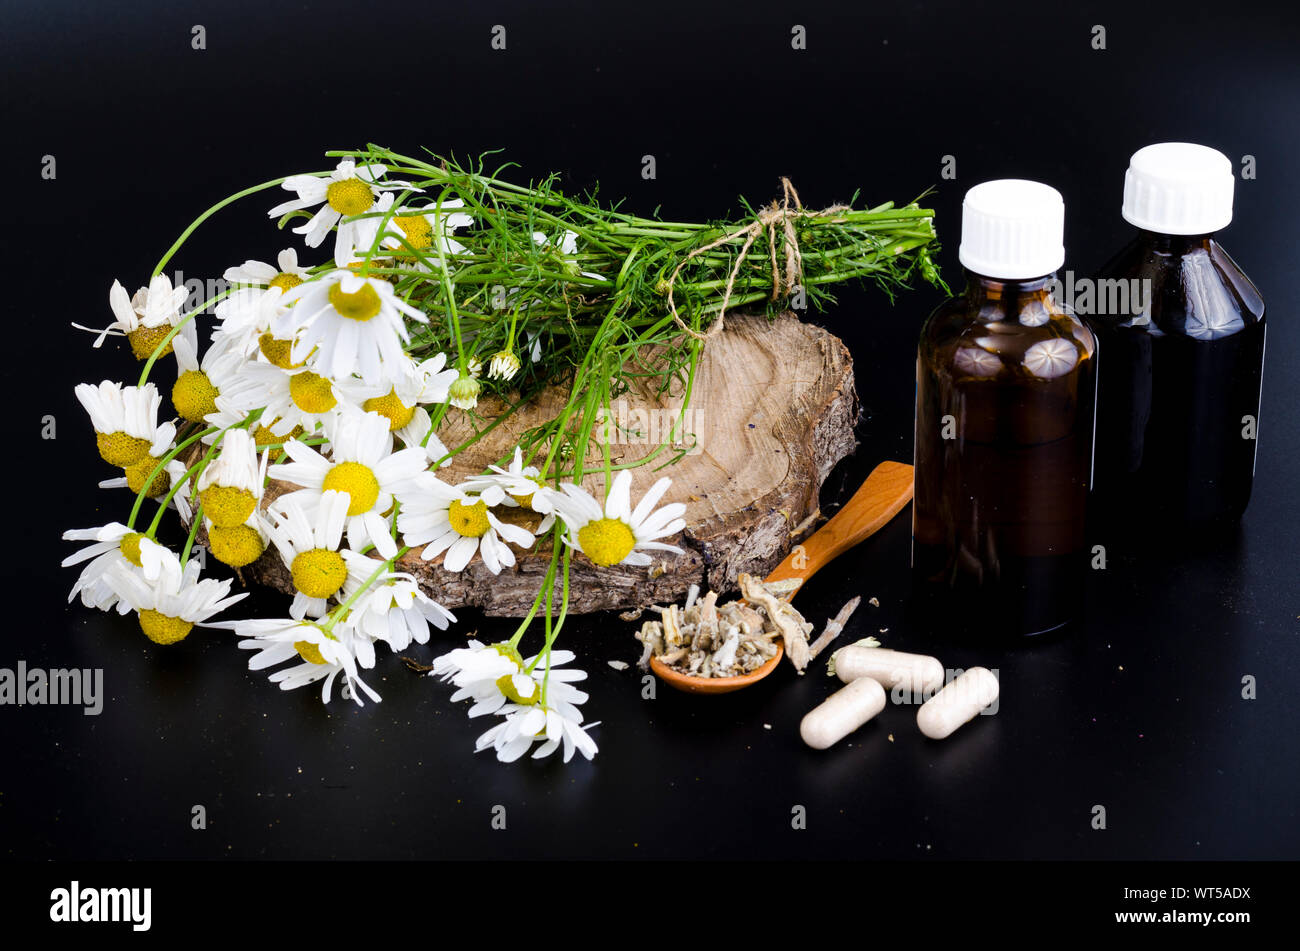 Herbal capsules and tinctures from medicinal plants. Studio Photo Stock Photo